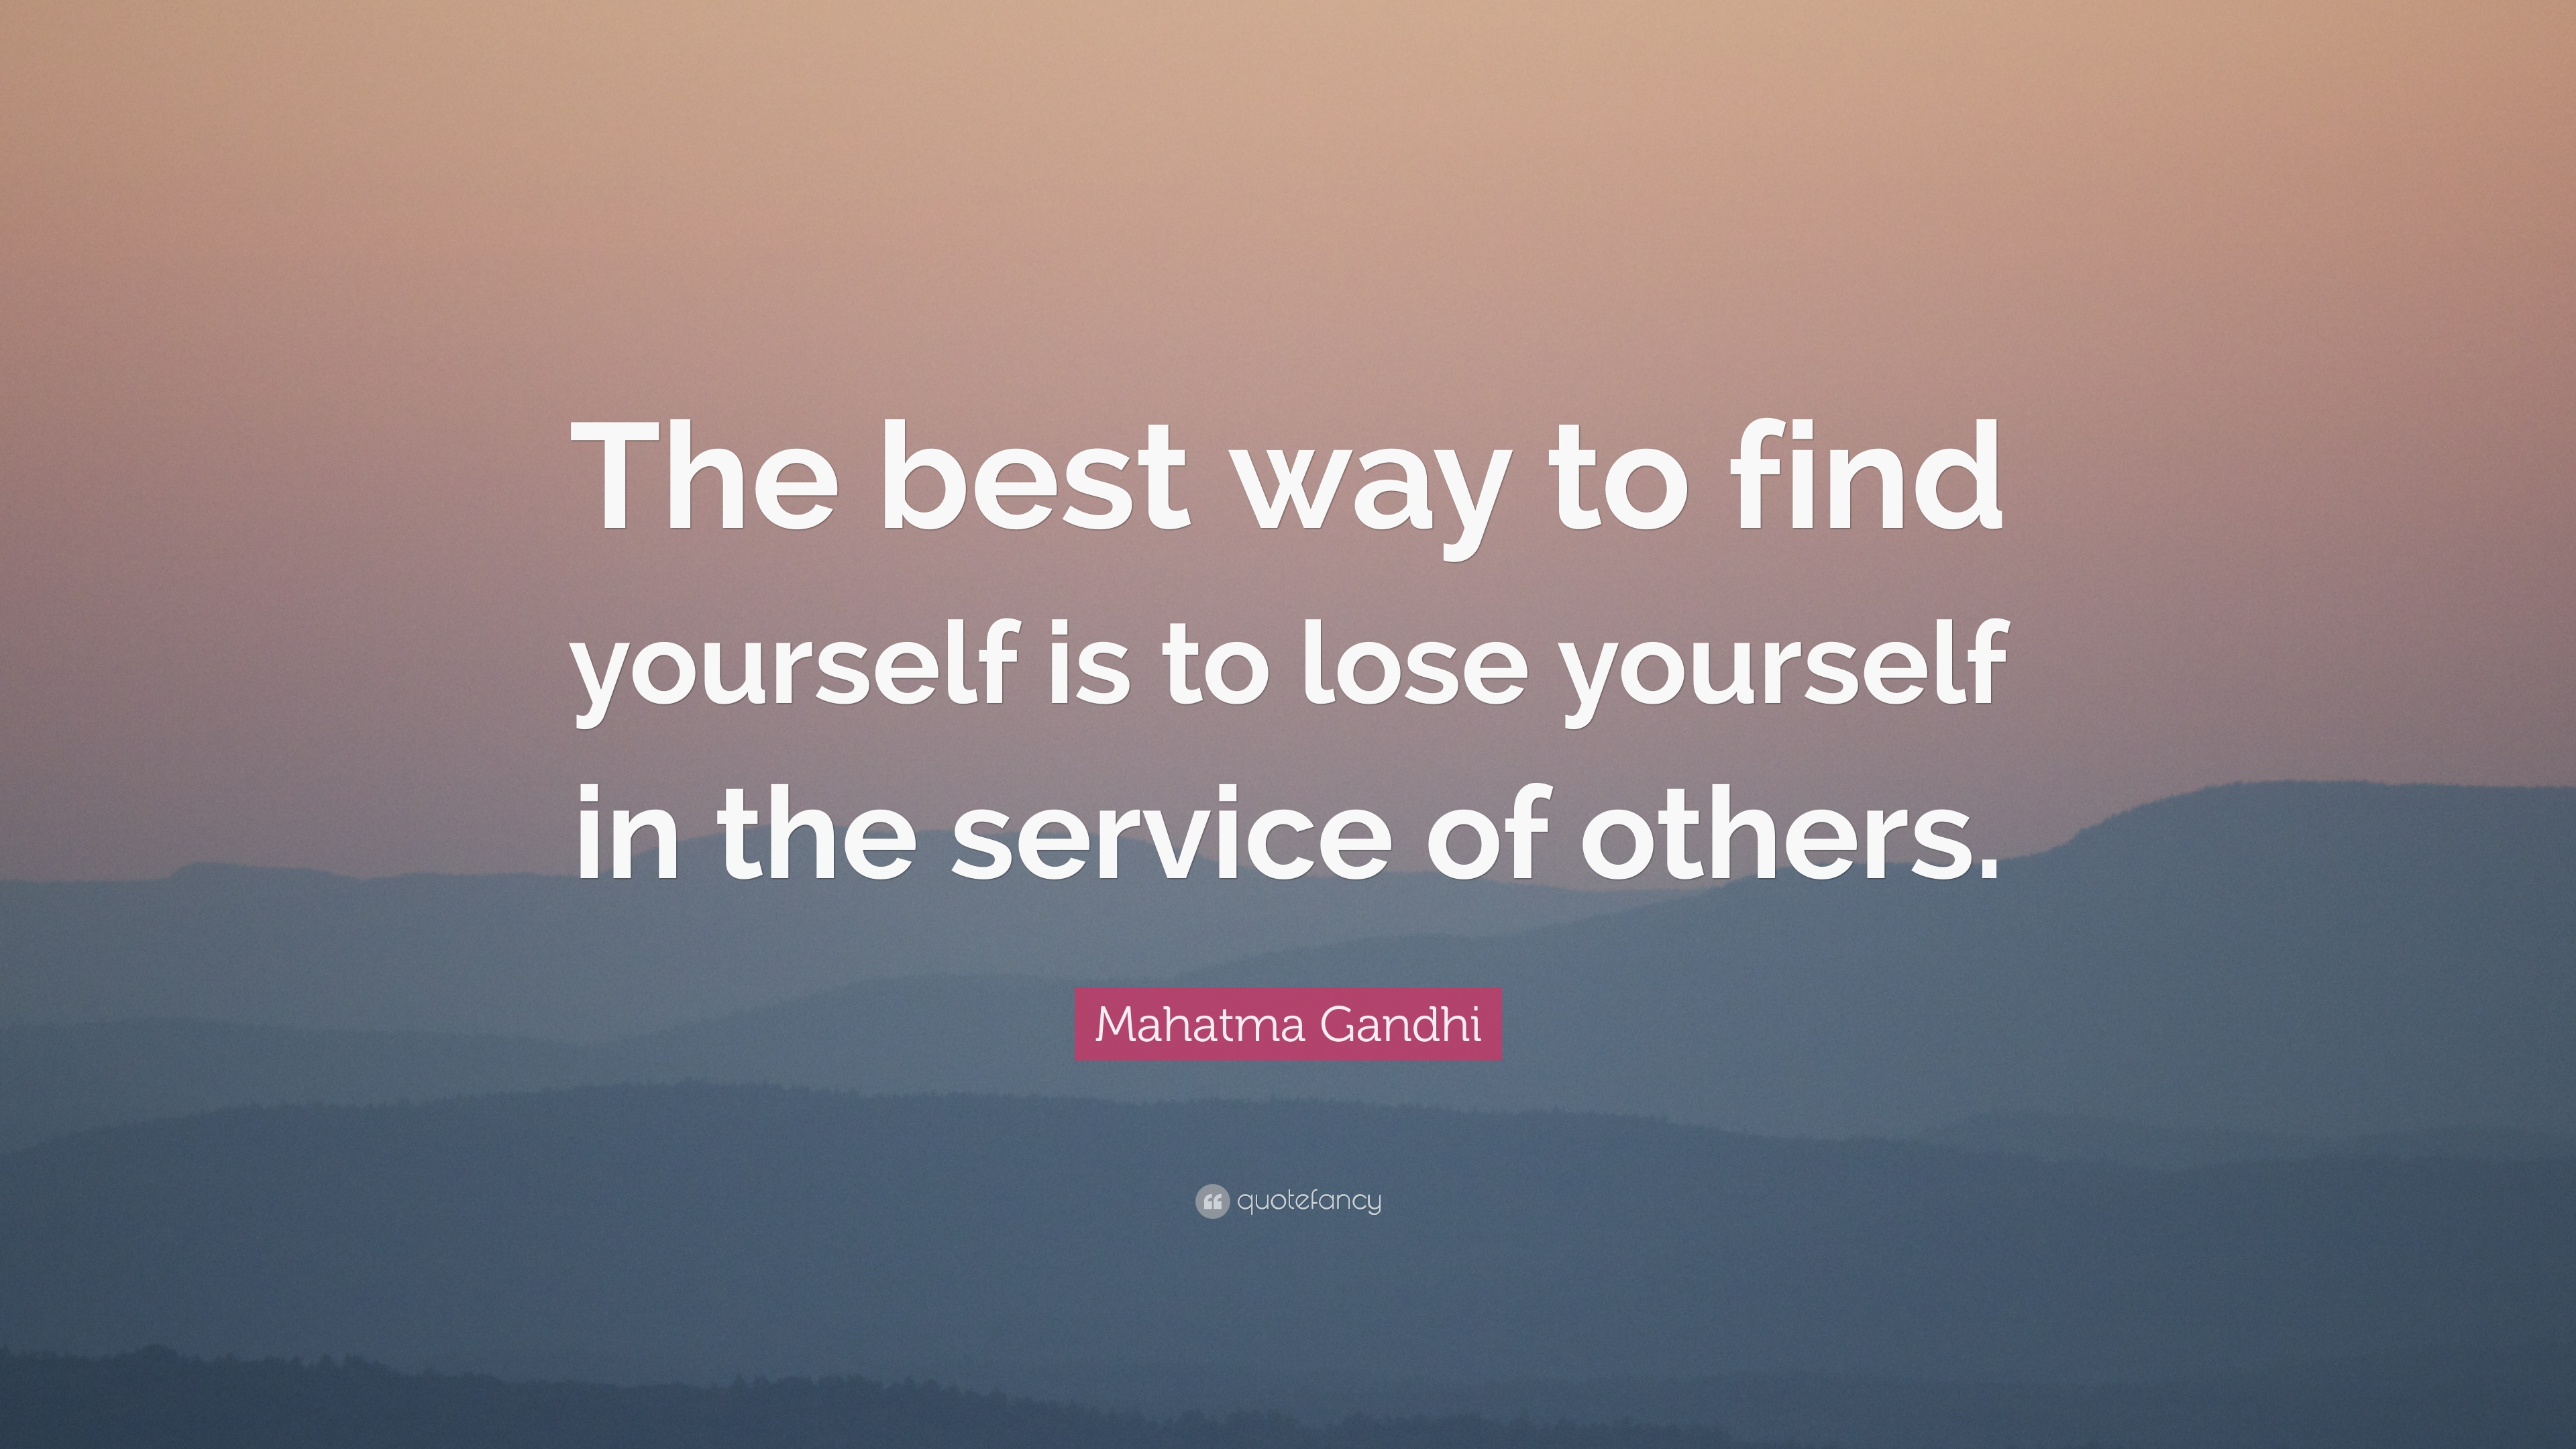 mahatma gandhi quote the best way to find yourself is to